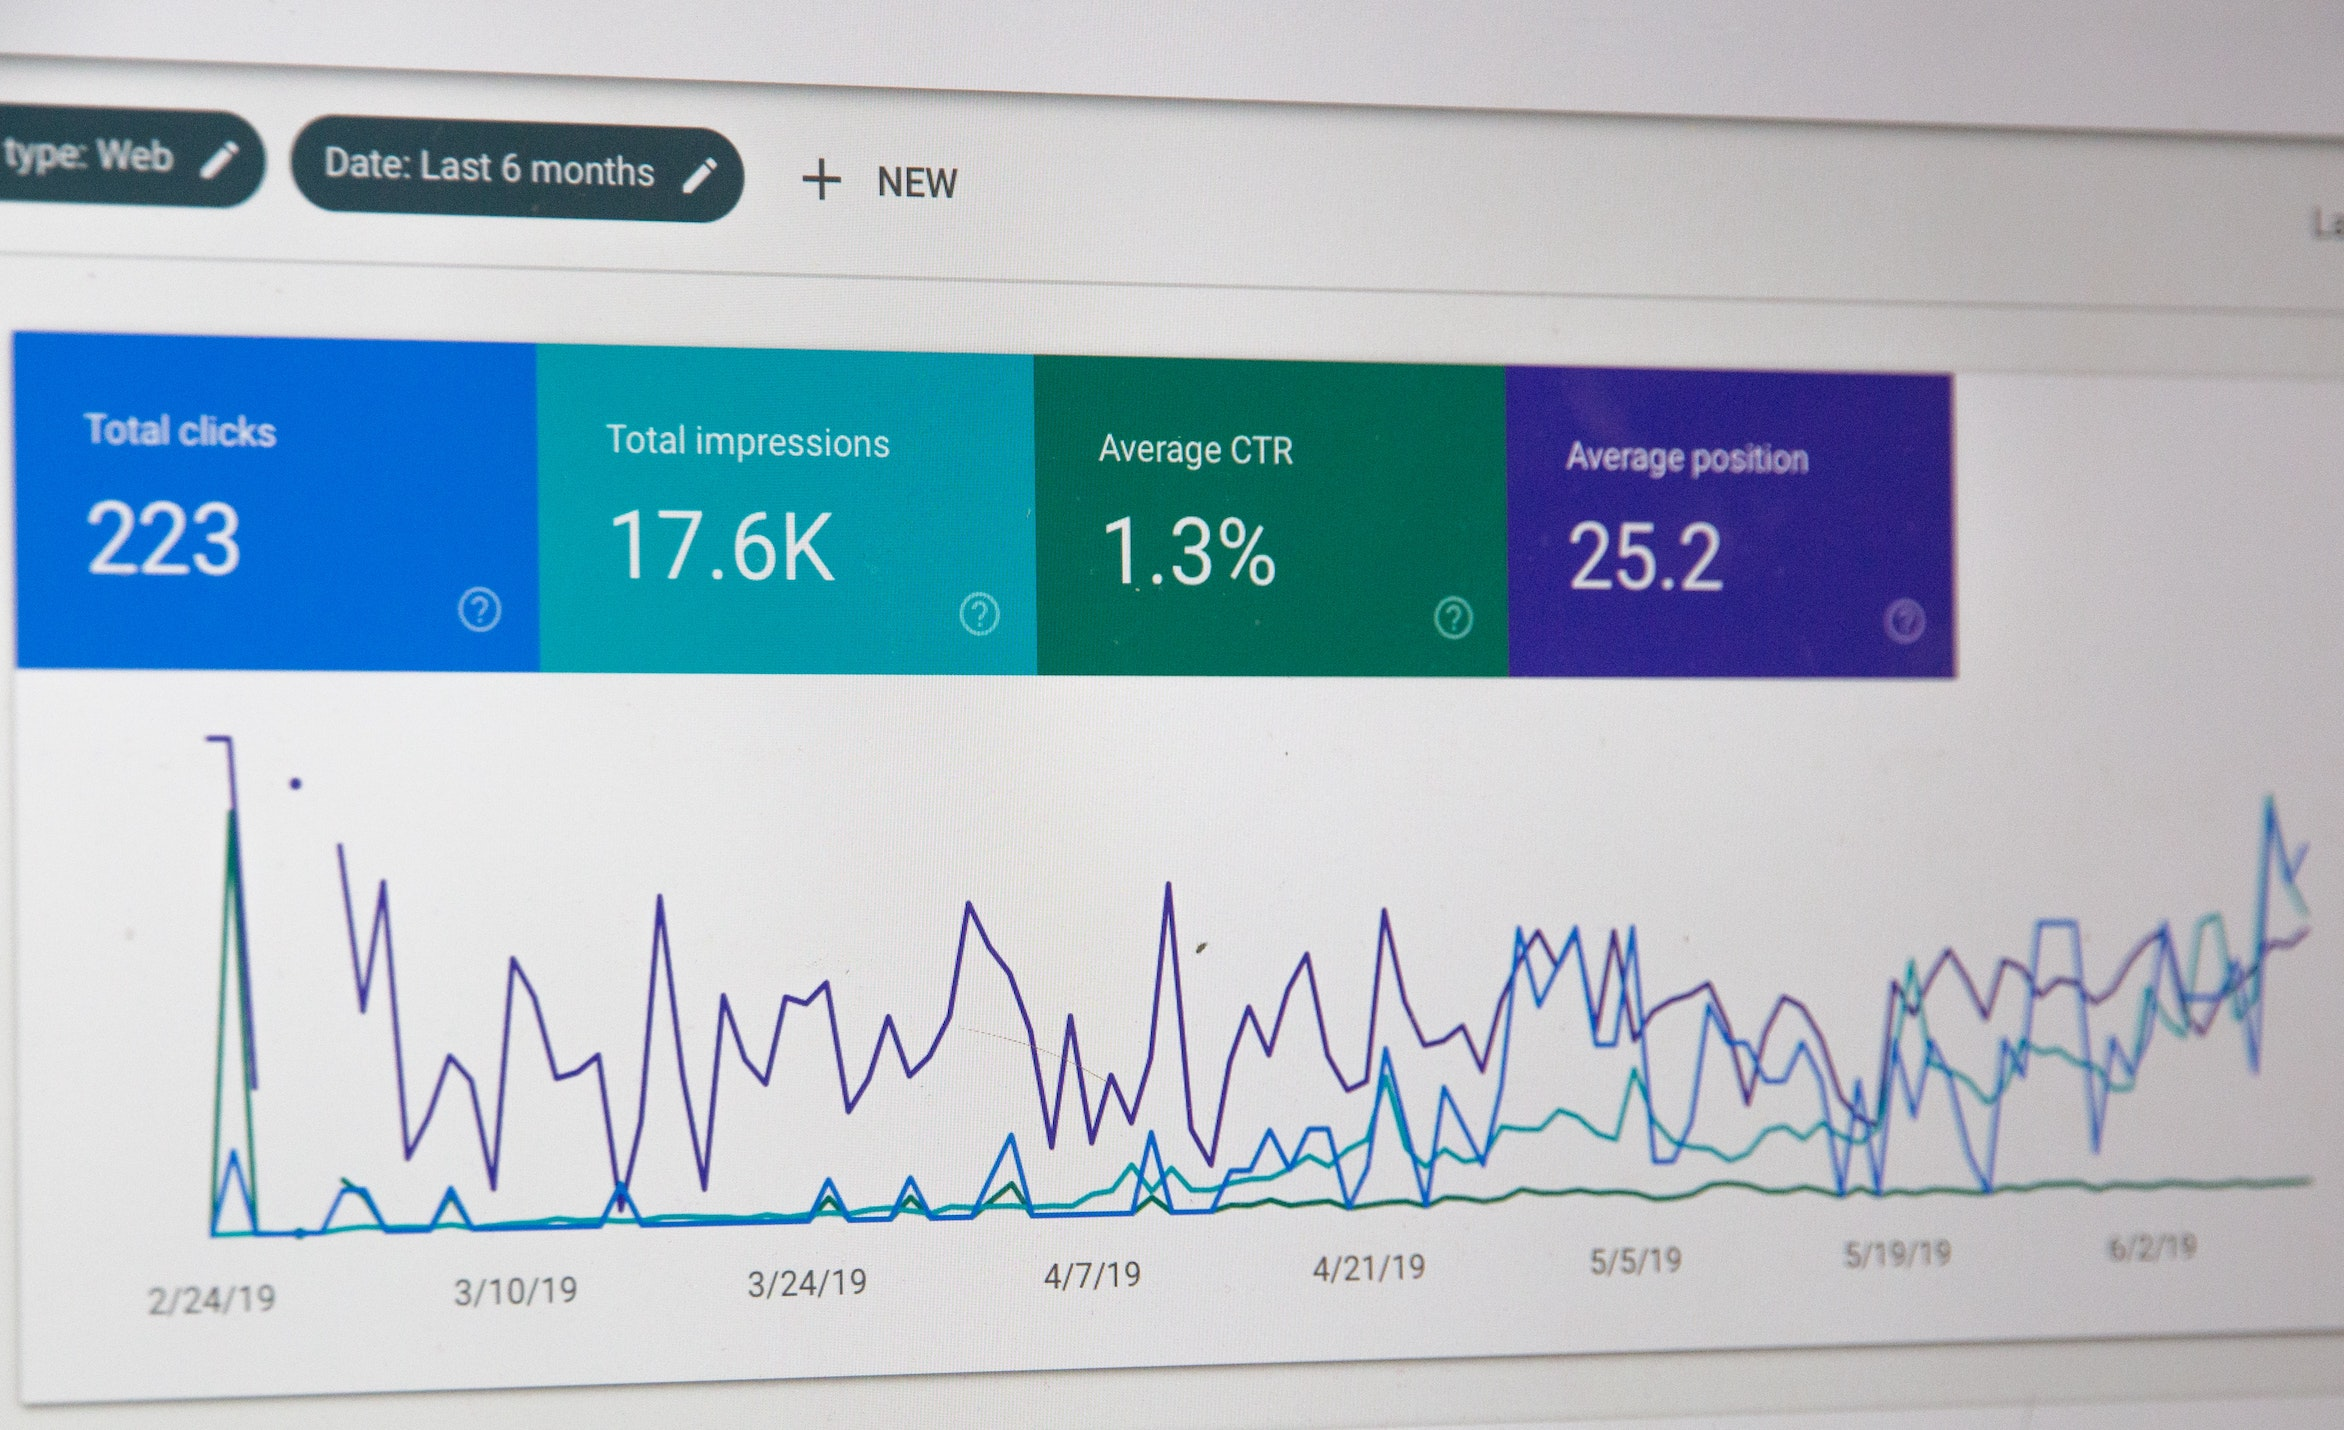 You can stop looking for googleapis in your site's analytics